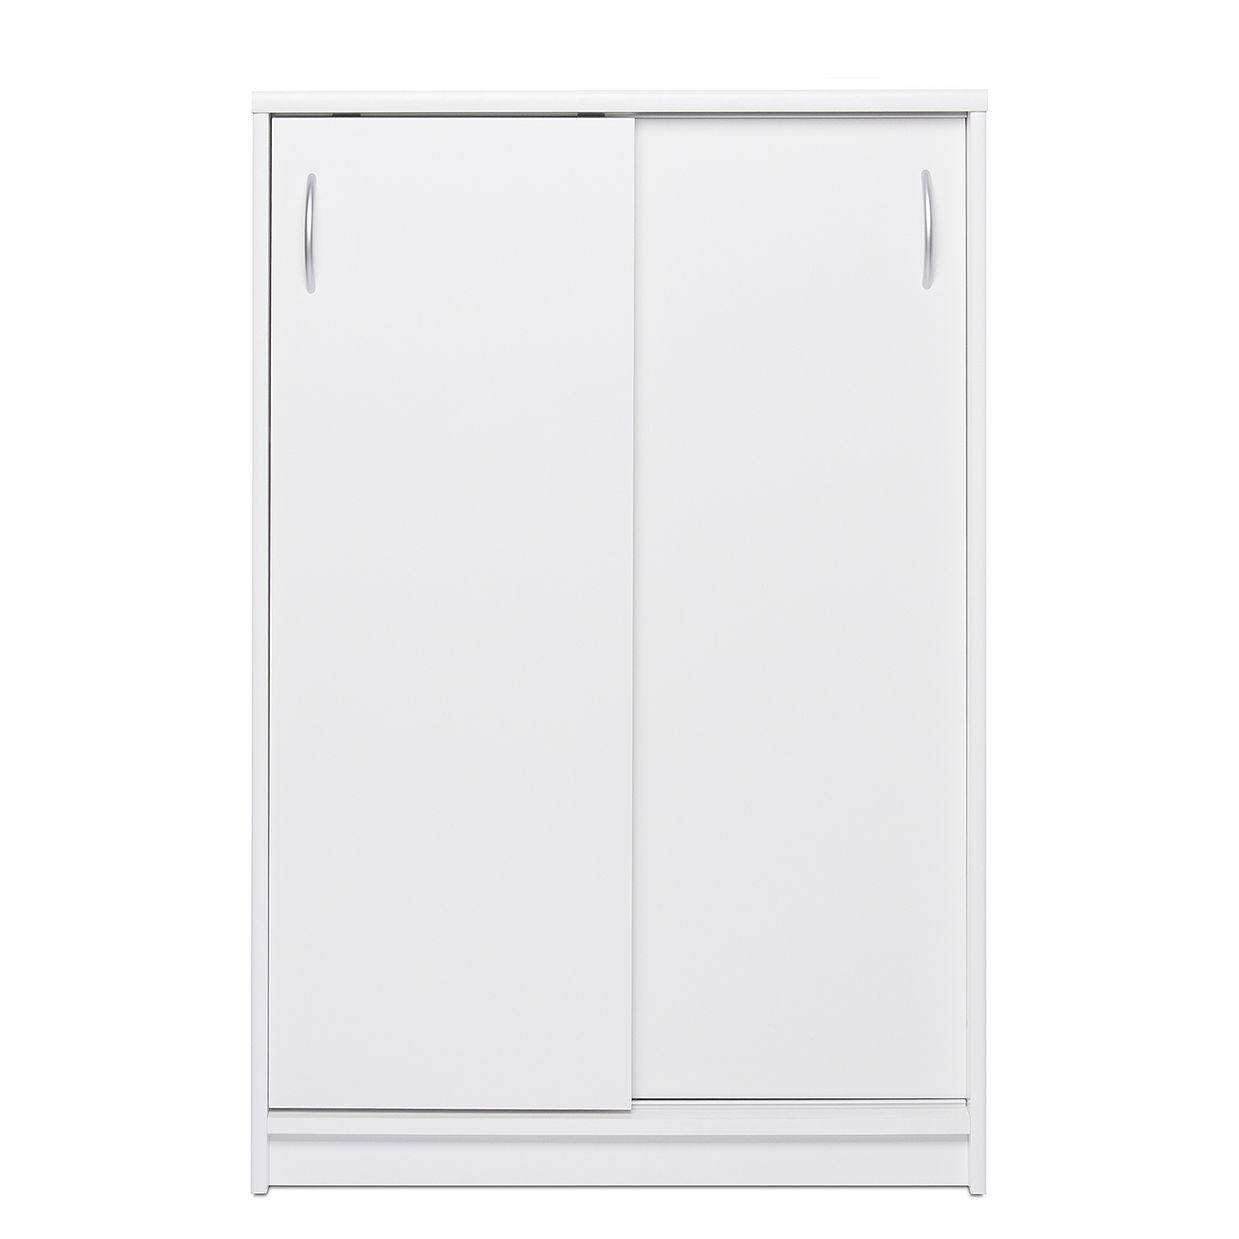 Armoire à dossiers Oradea II - Blanc - 74 cm, mooved